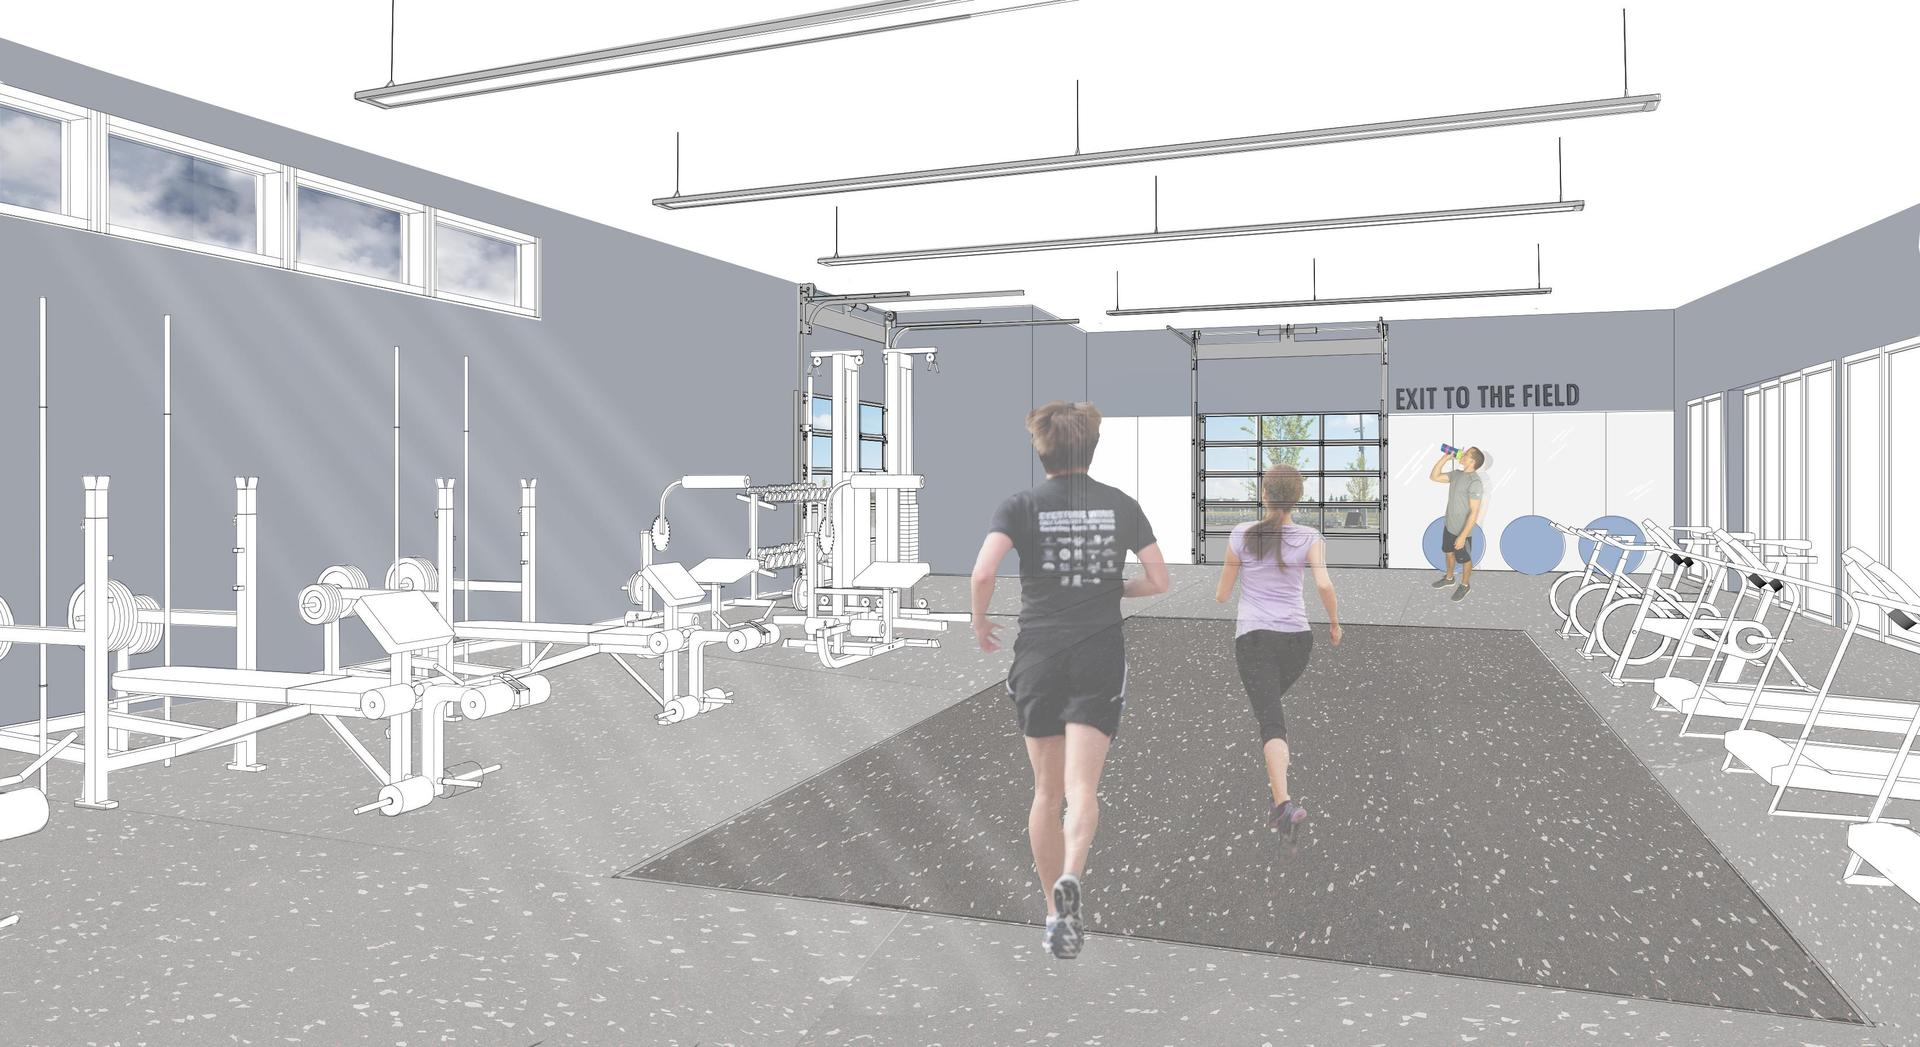 saalfeld athletic center fitness room